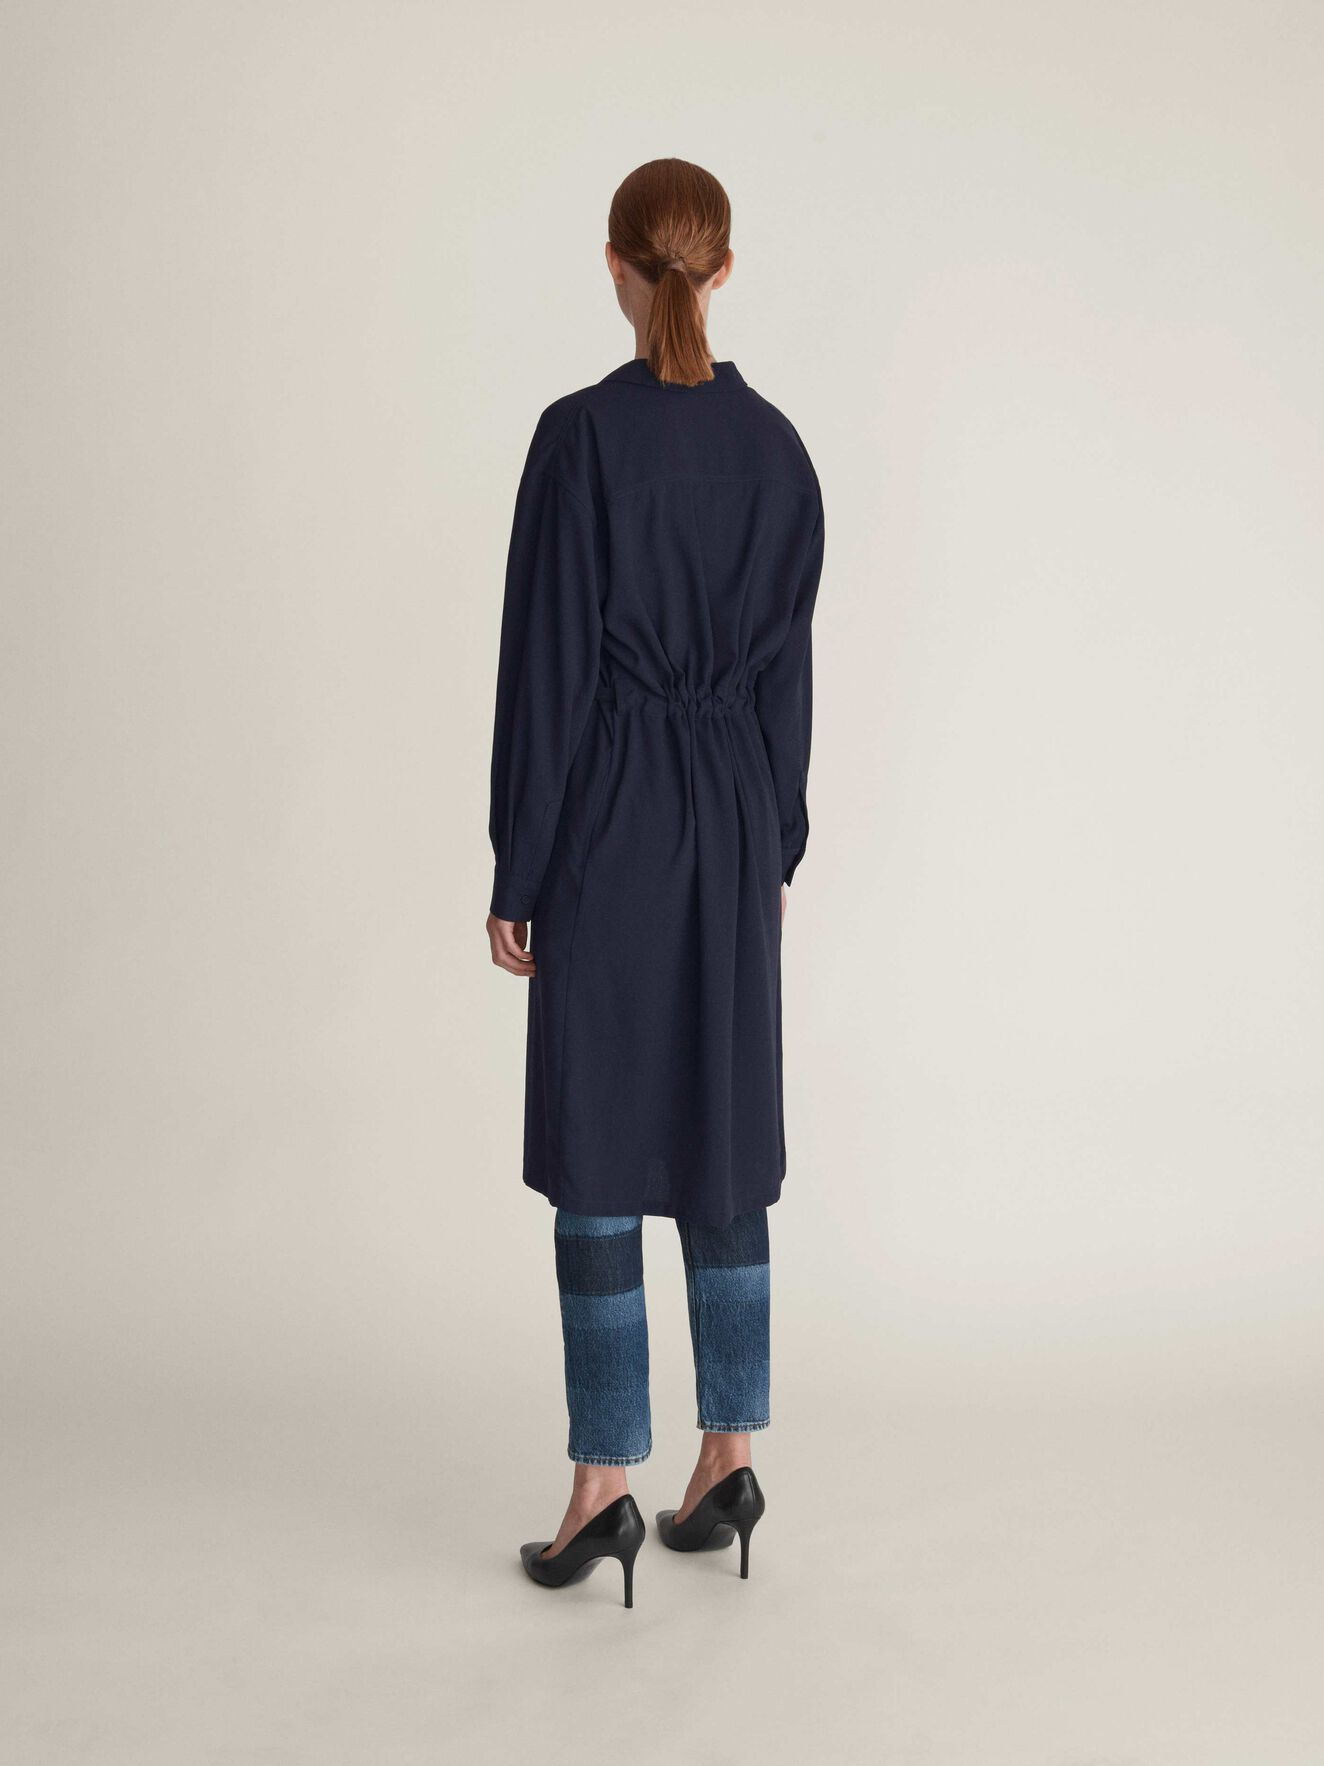 Eshna Dress in Deep Well from Tiger of Sweden